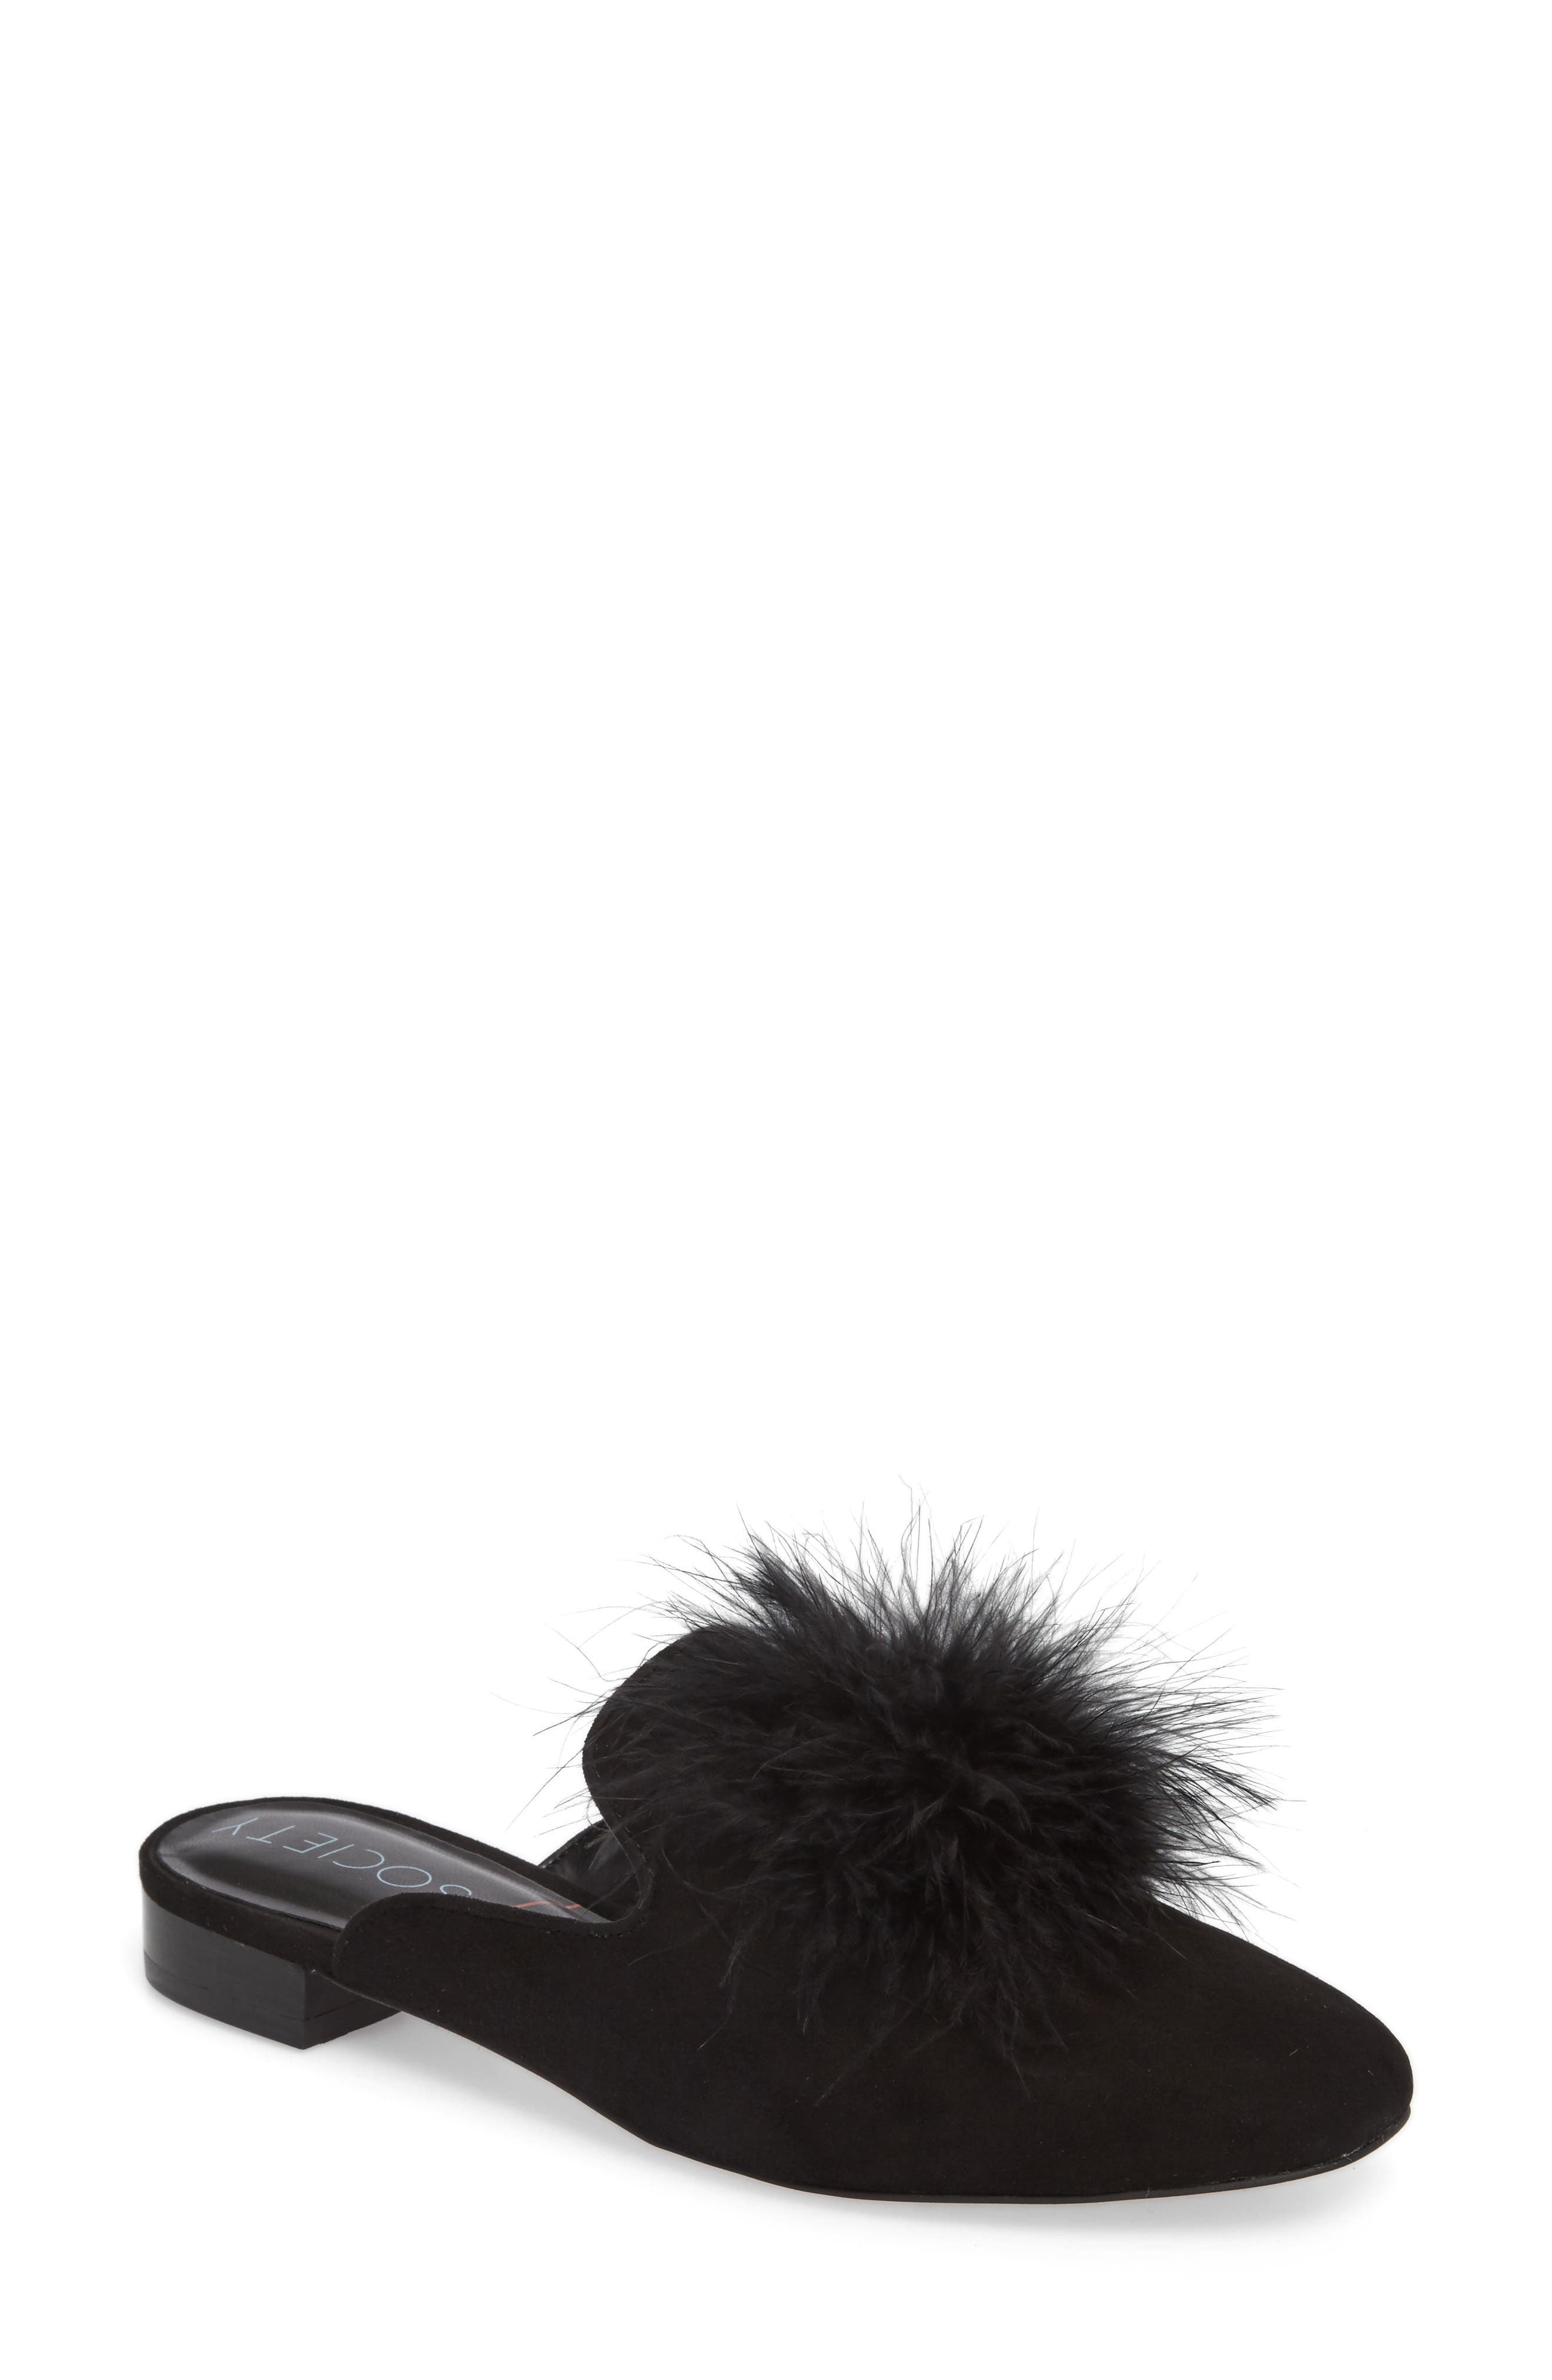 Alternate Image 1 Selected - Sole Society Cleona Feather Pompom Mule (Women)